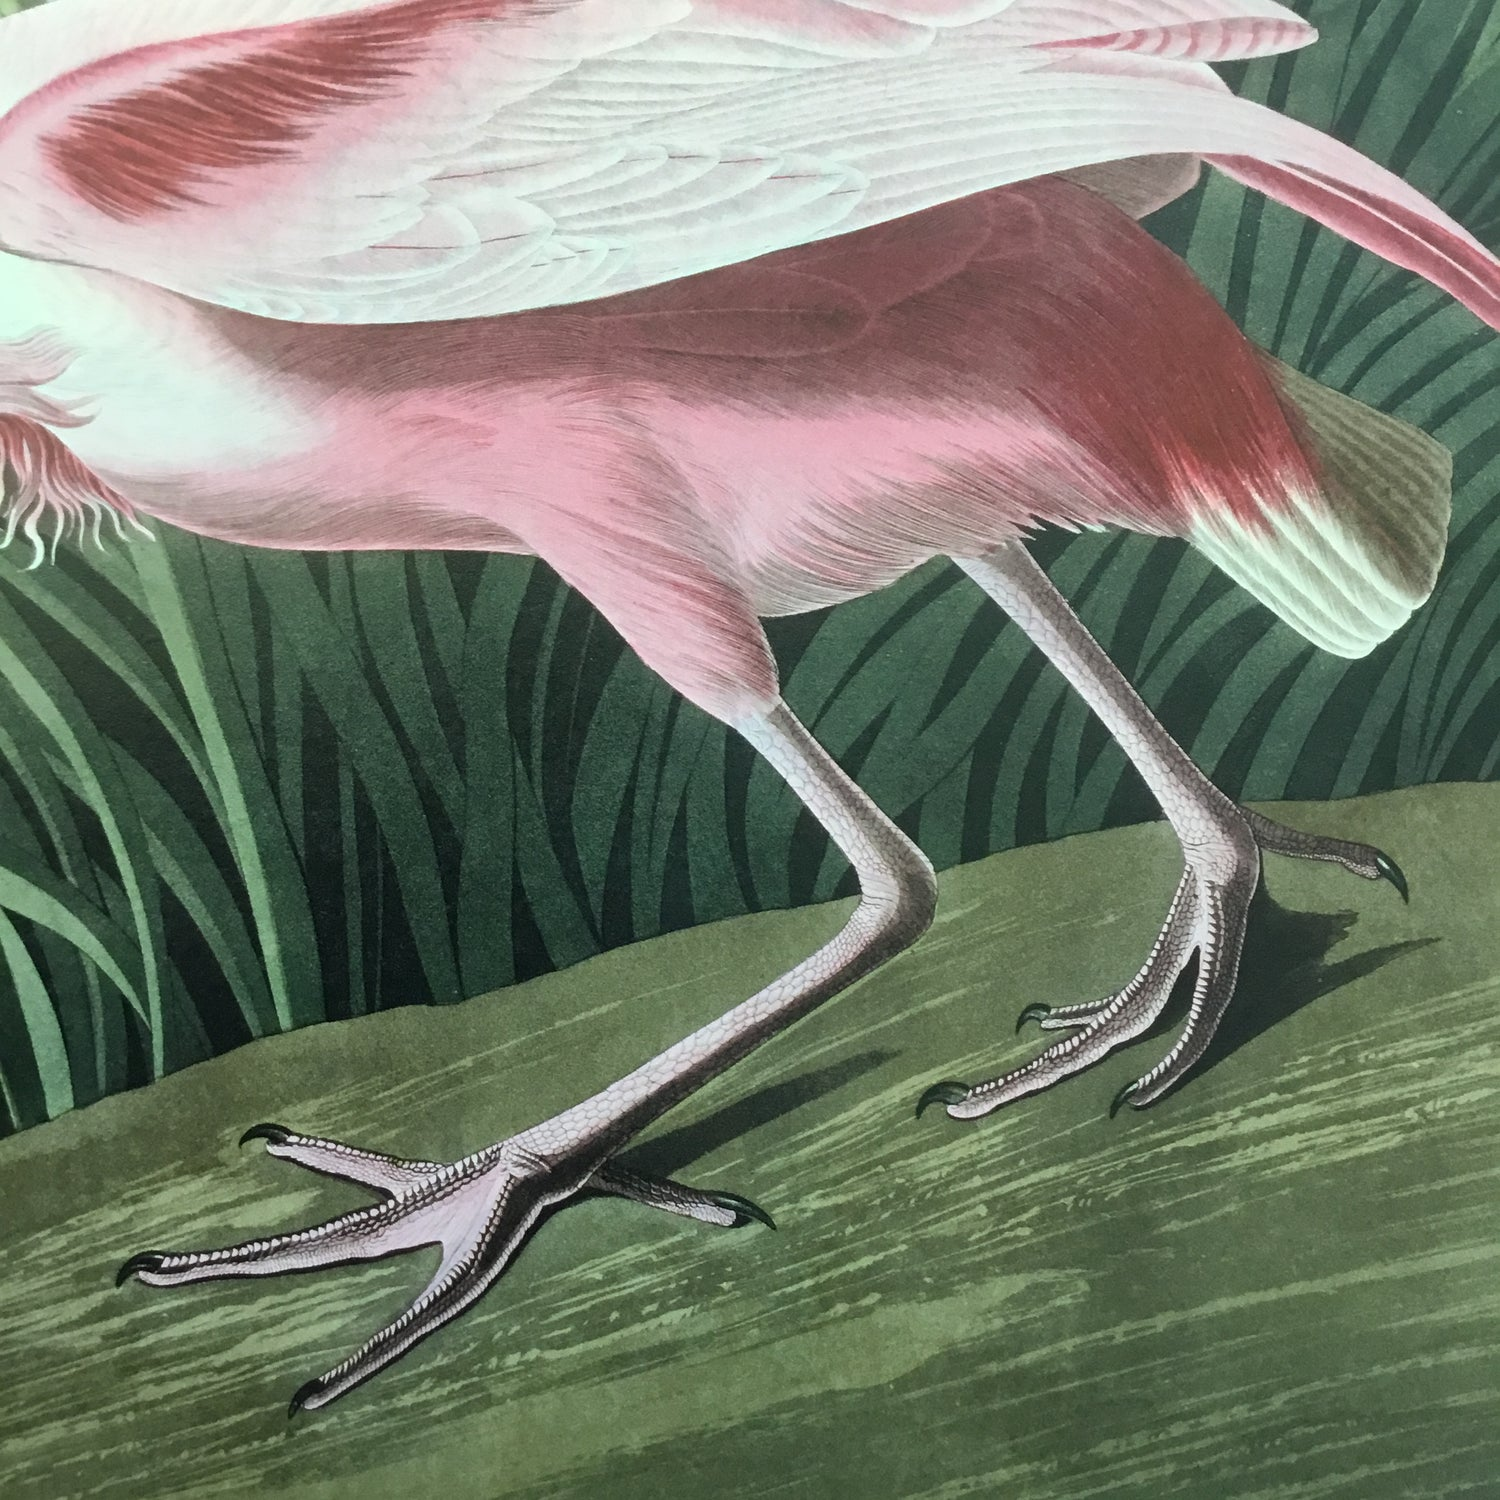 Essex Edition Roseate Spoonbill, 19 x 23 inches.